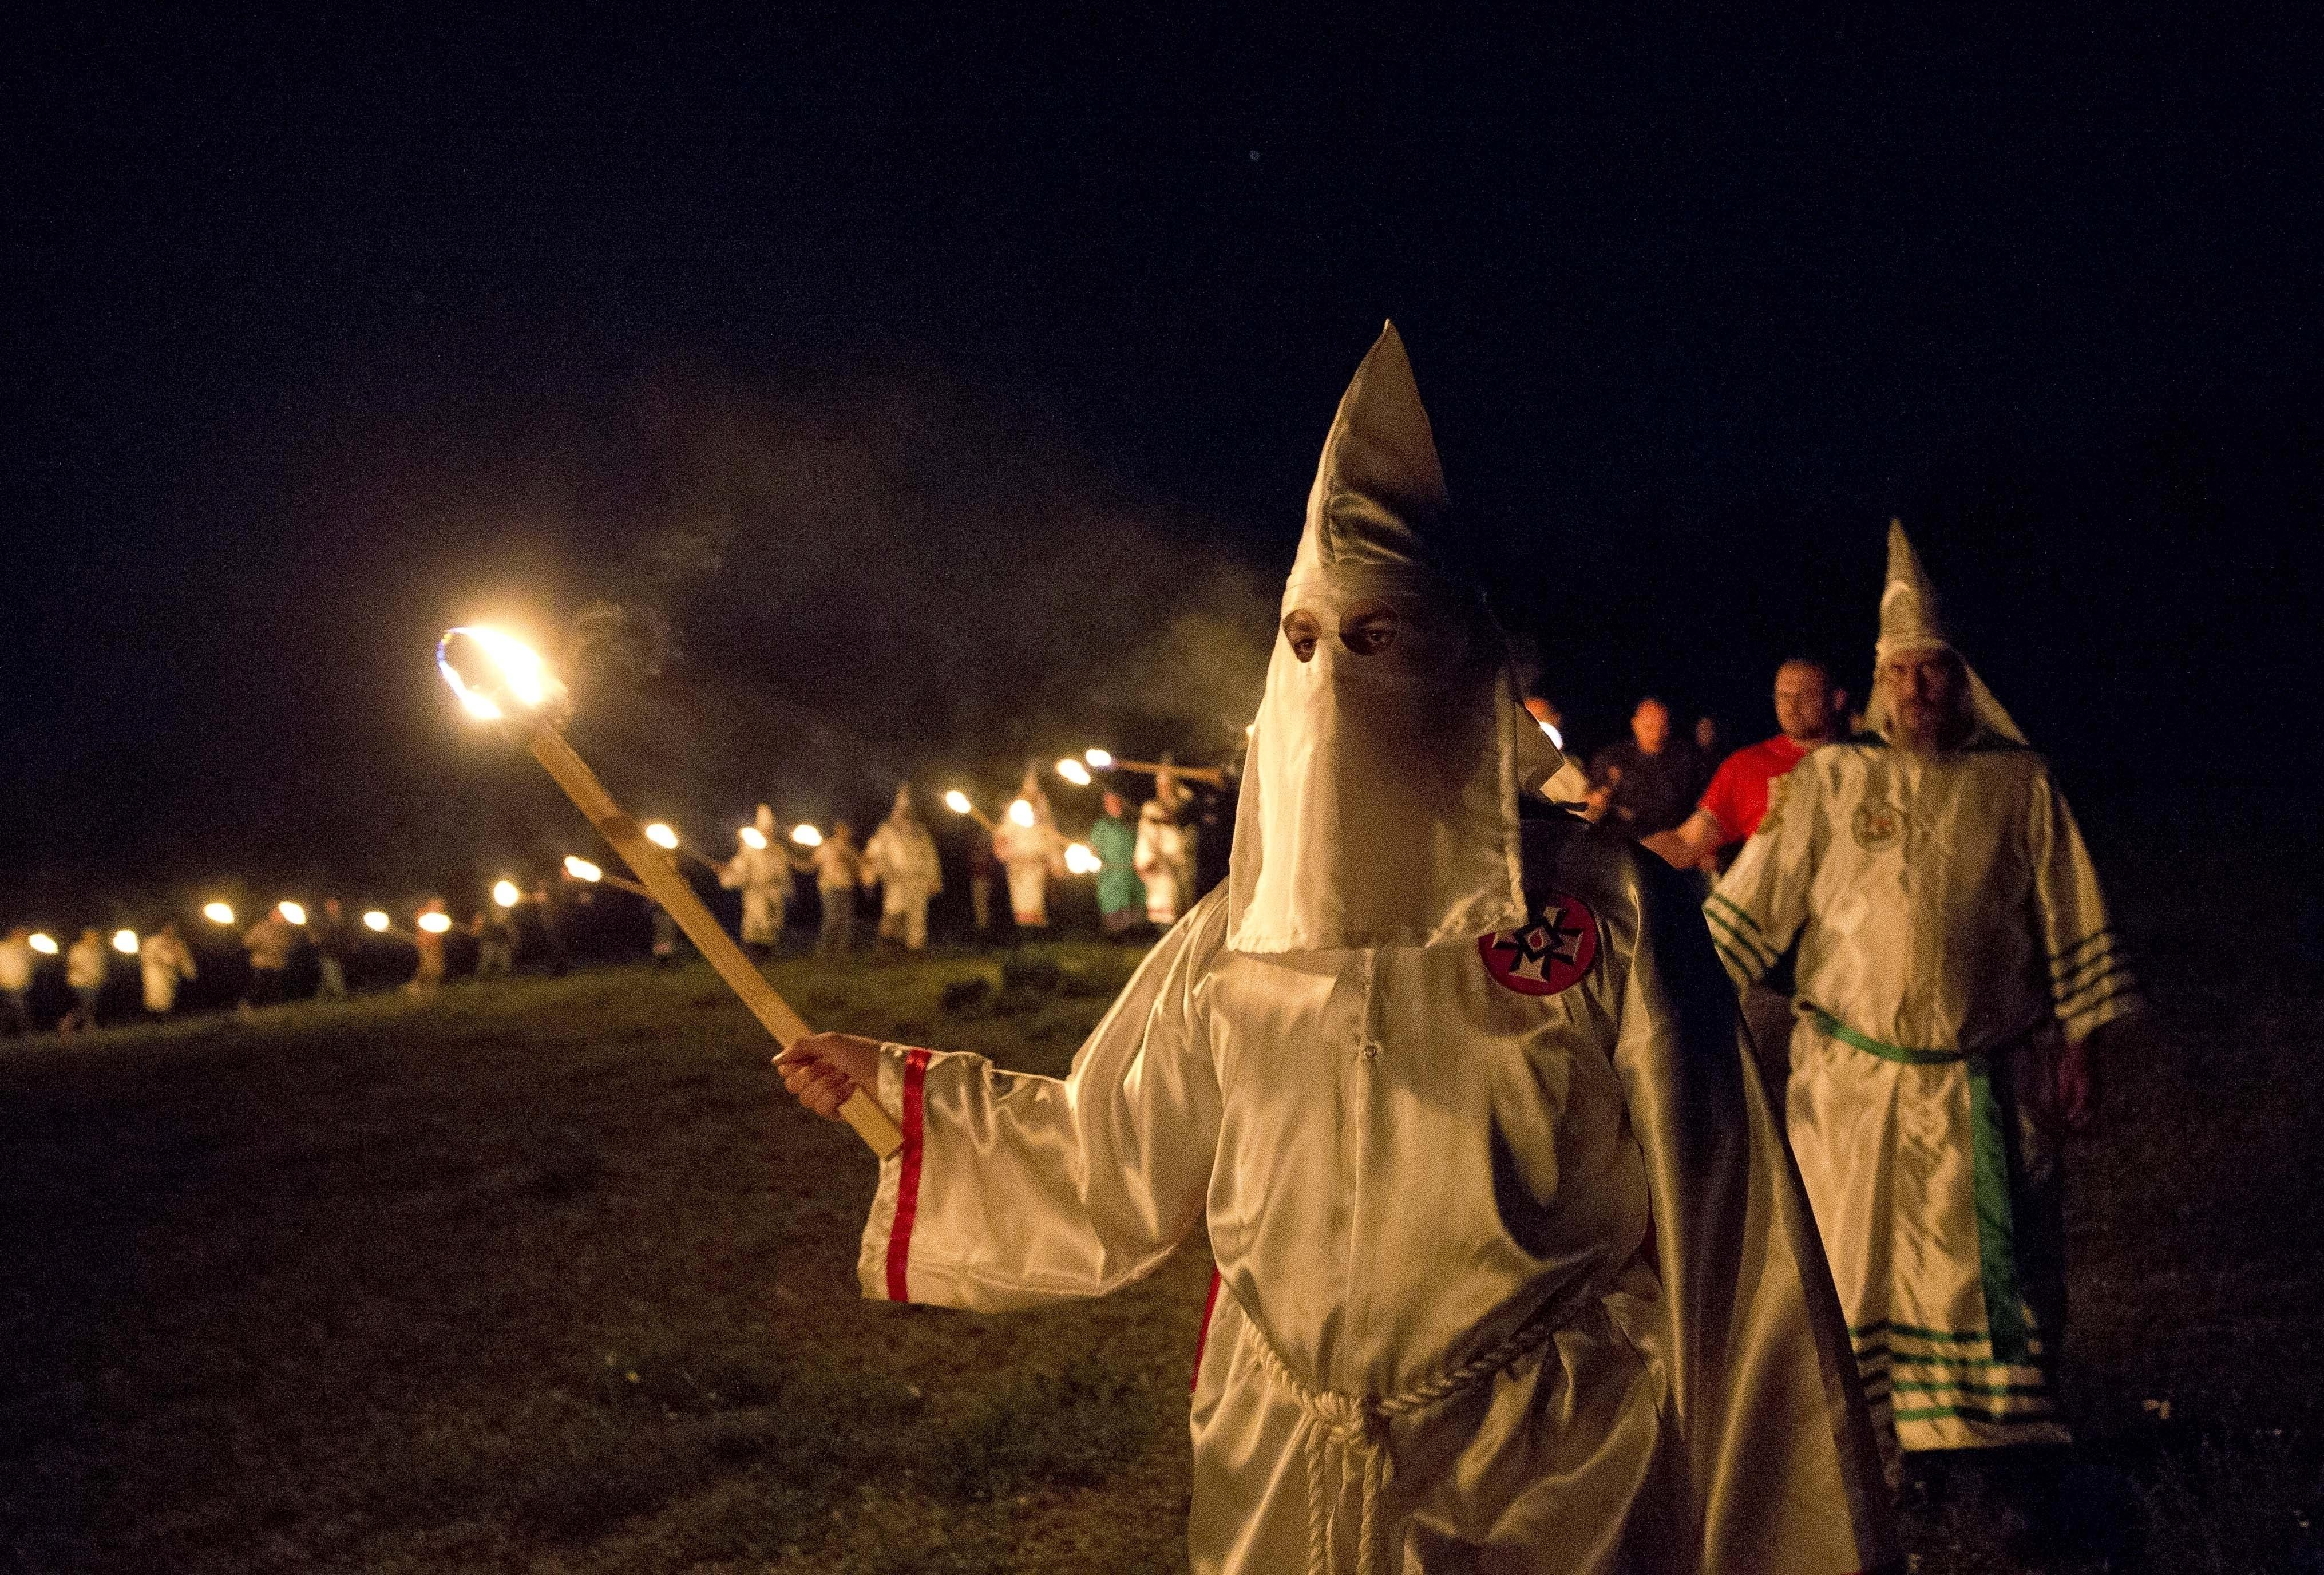 David Barber Tennessee Corrections Official Resigns After Calling Kkk More American Than Obama Washington Times